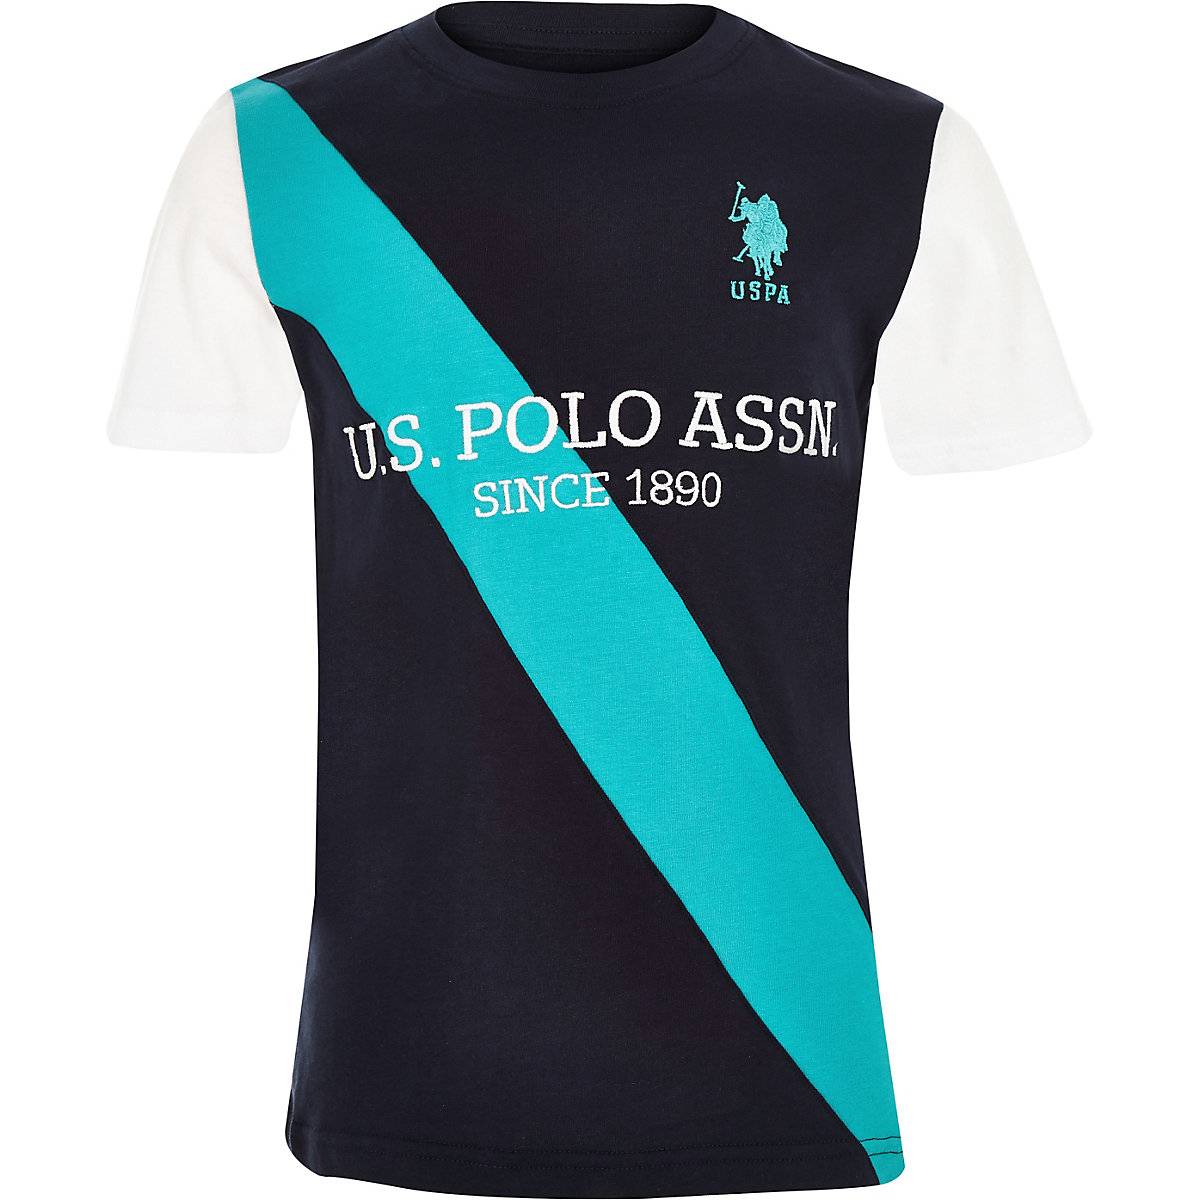 U.S. Polo Assn. – Marineblaues T-Shirt